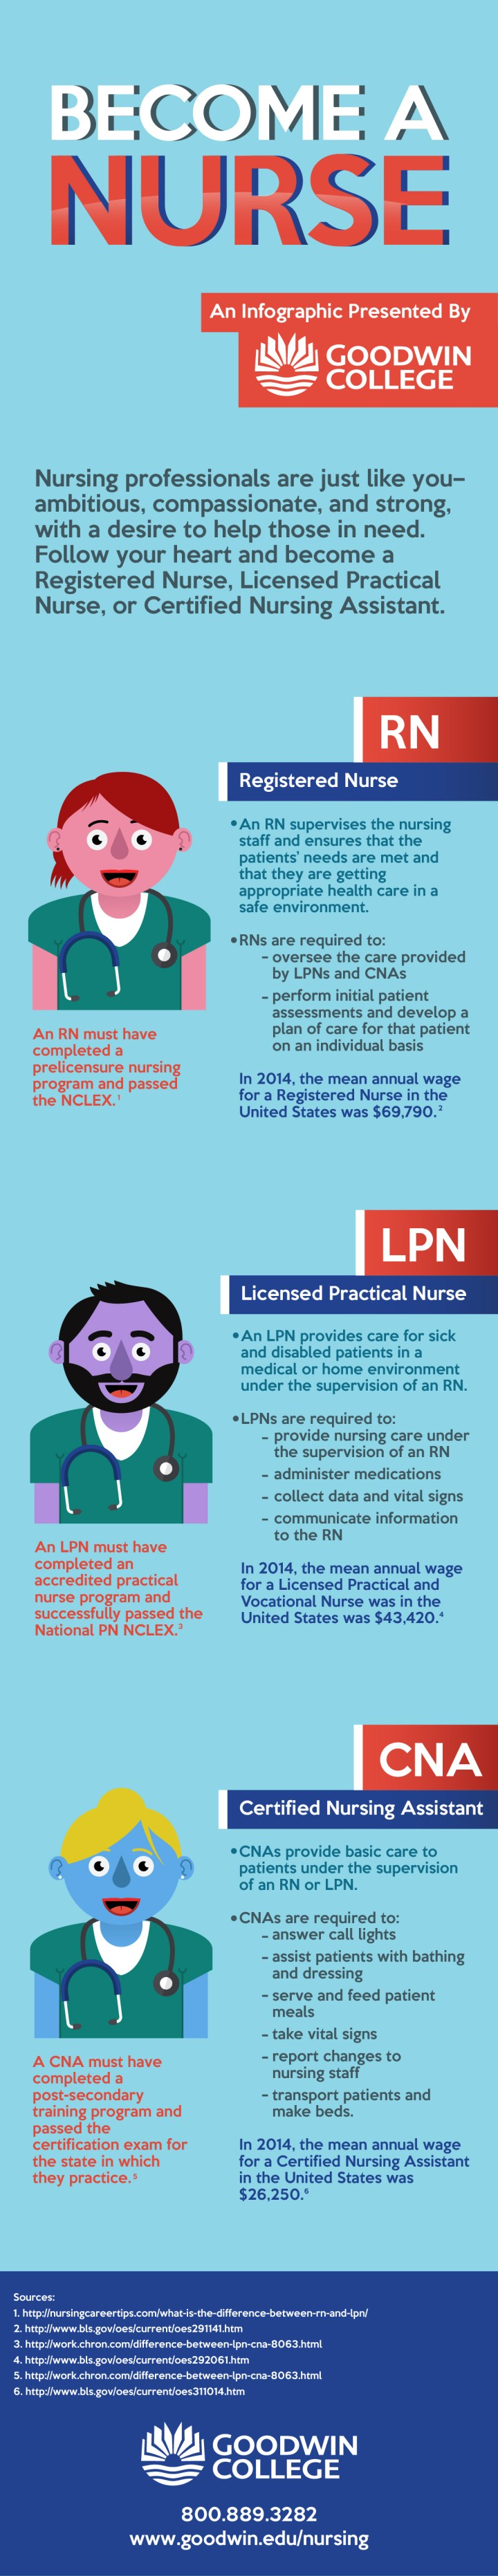 The Differences Between Rn Lpn And Cna Goodwin College